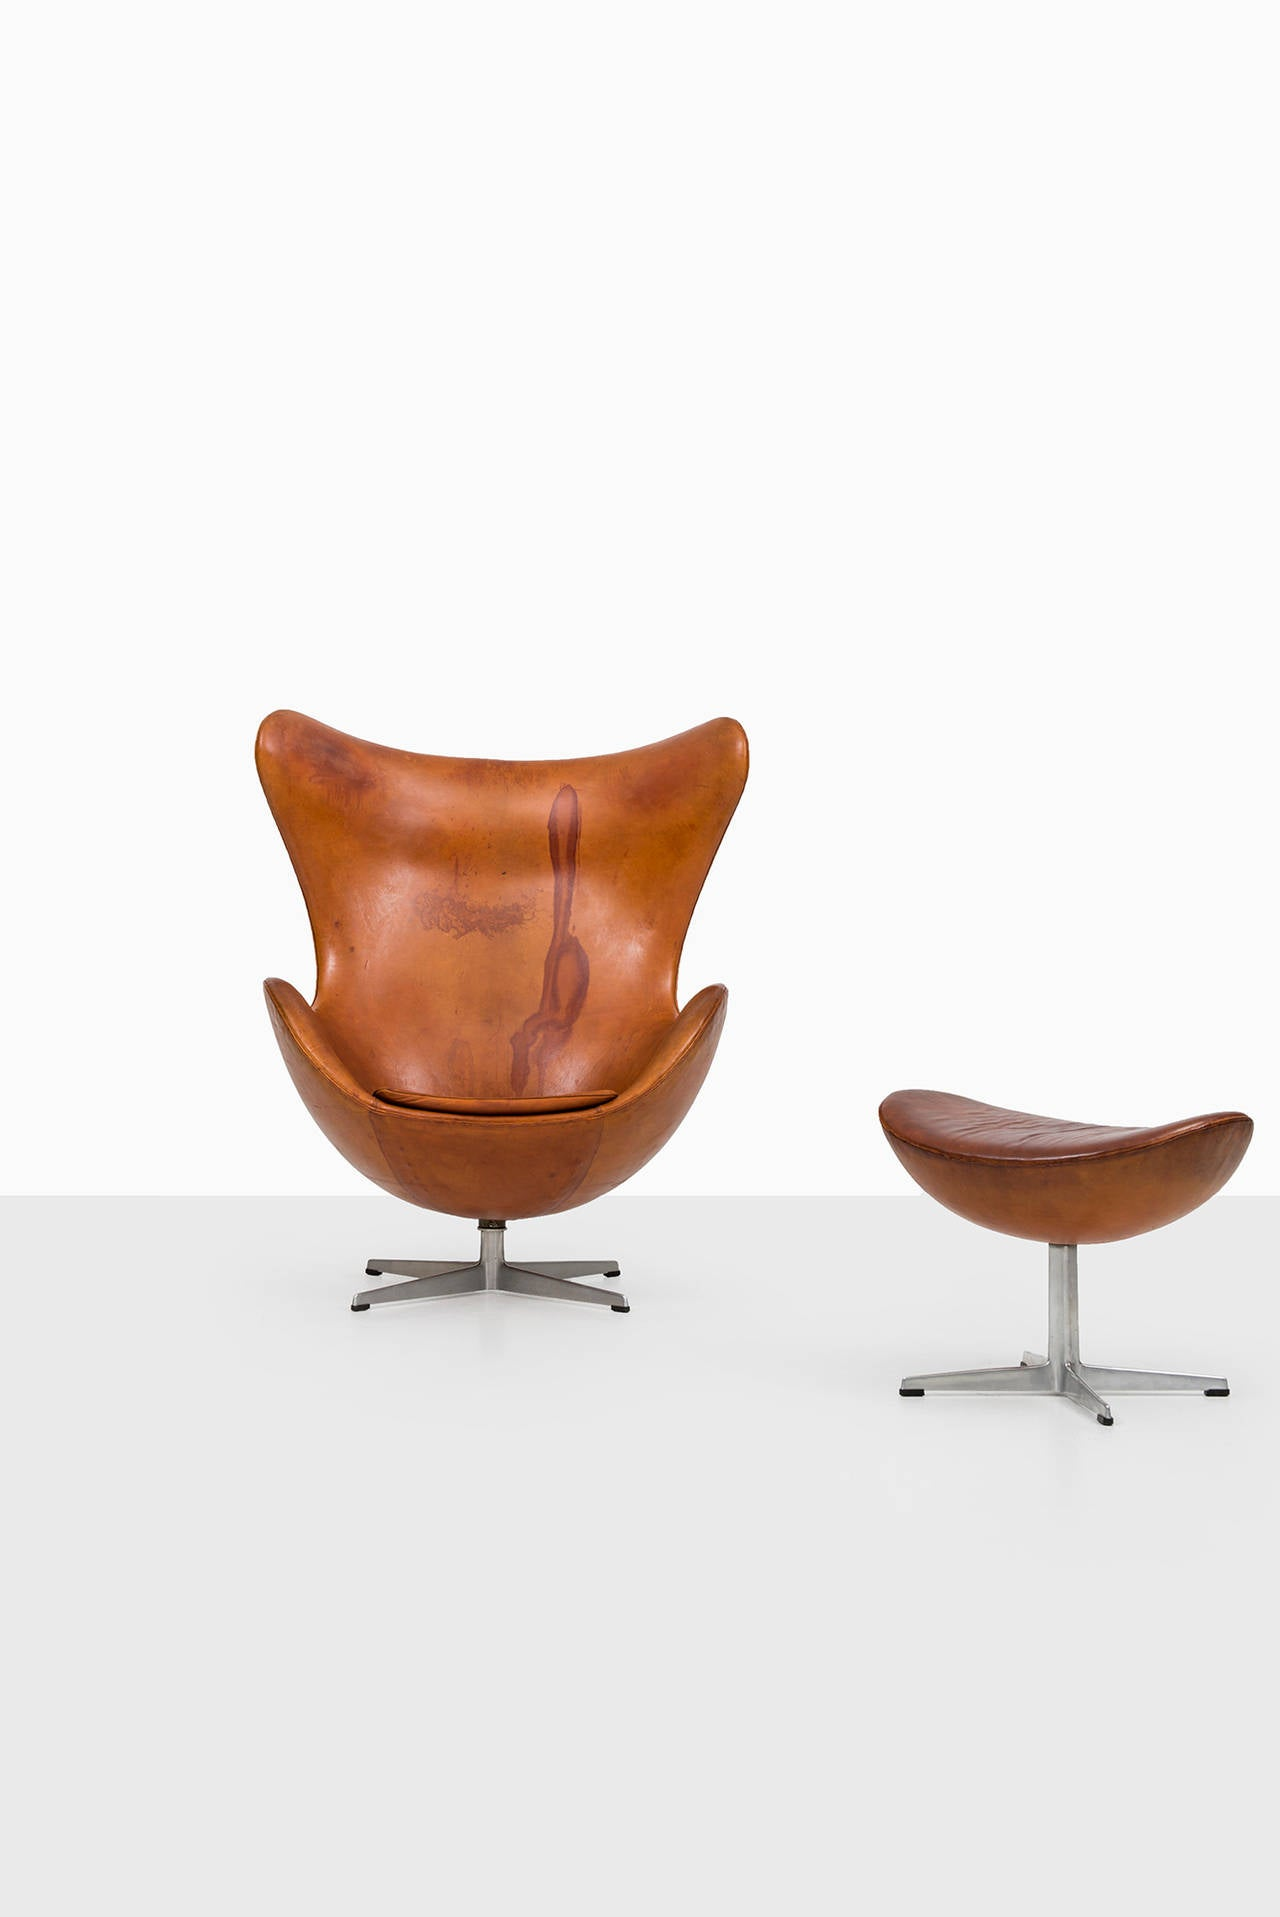 arne jacobsen egg chair in original cognac brown leather by fritz hansen at 1stdibs. Black Bedroom Furniture Sets. Home Design Ideas